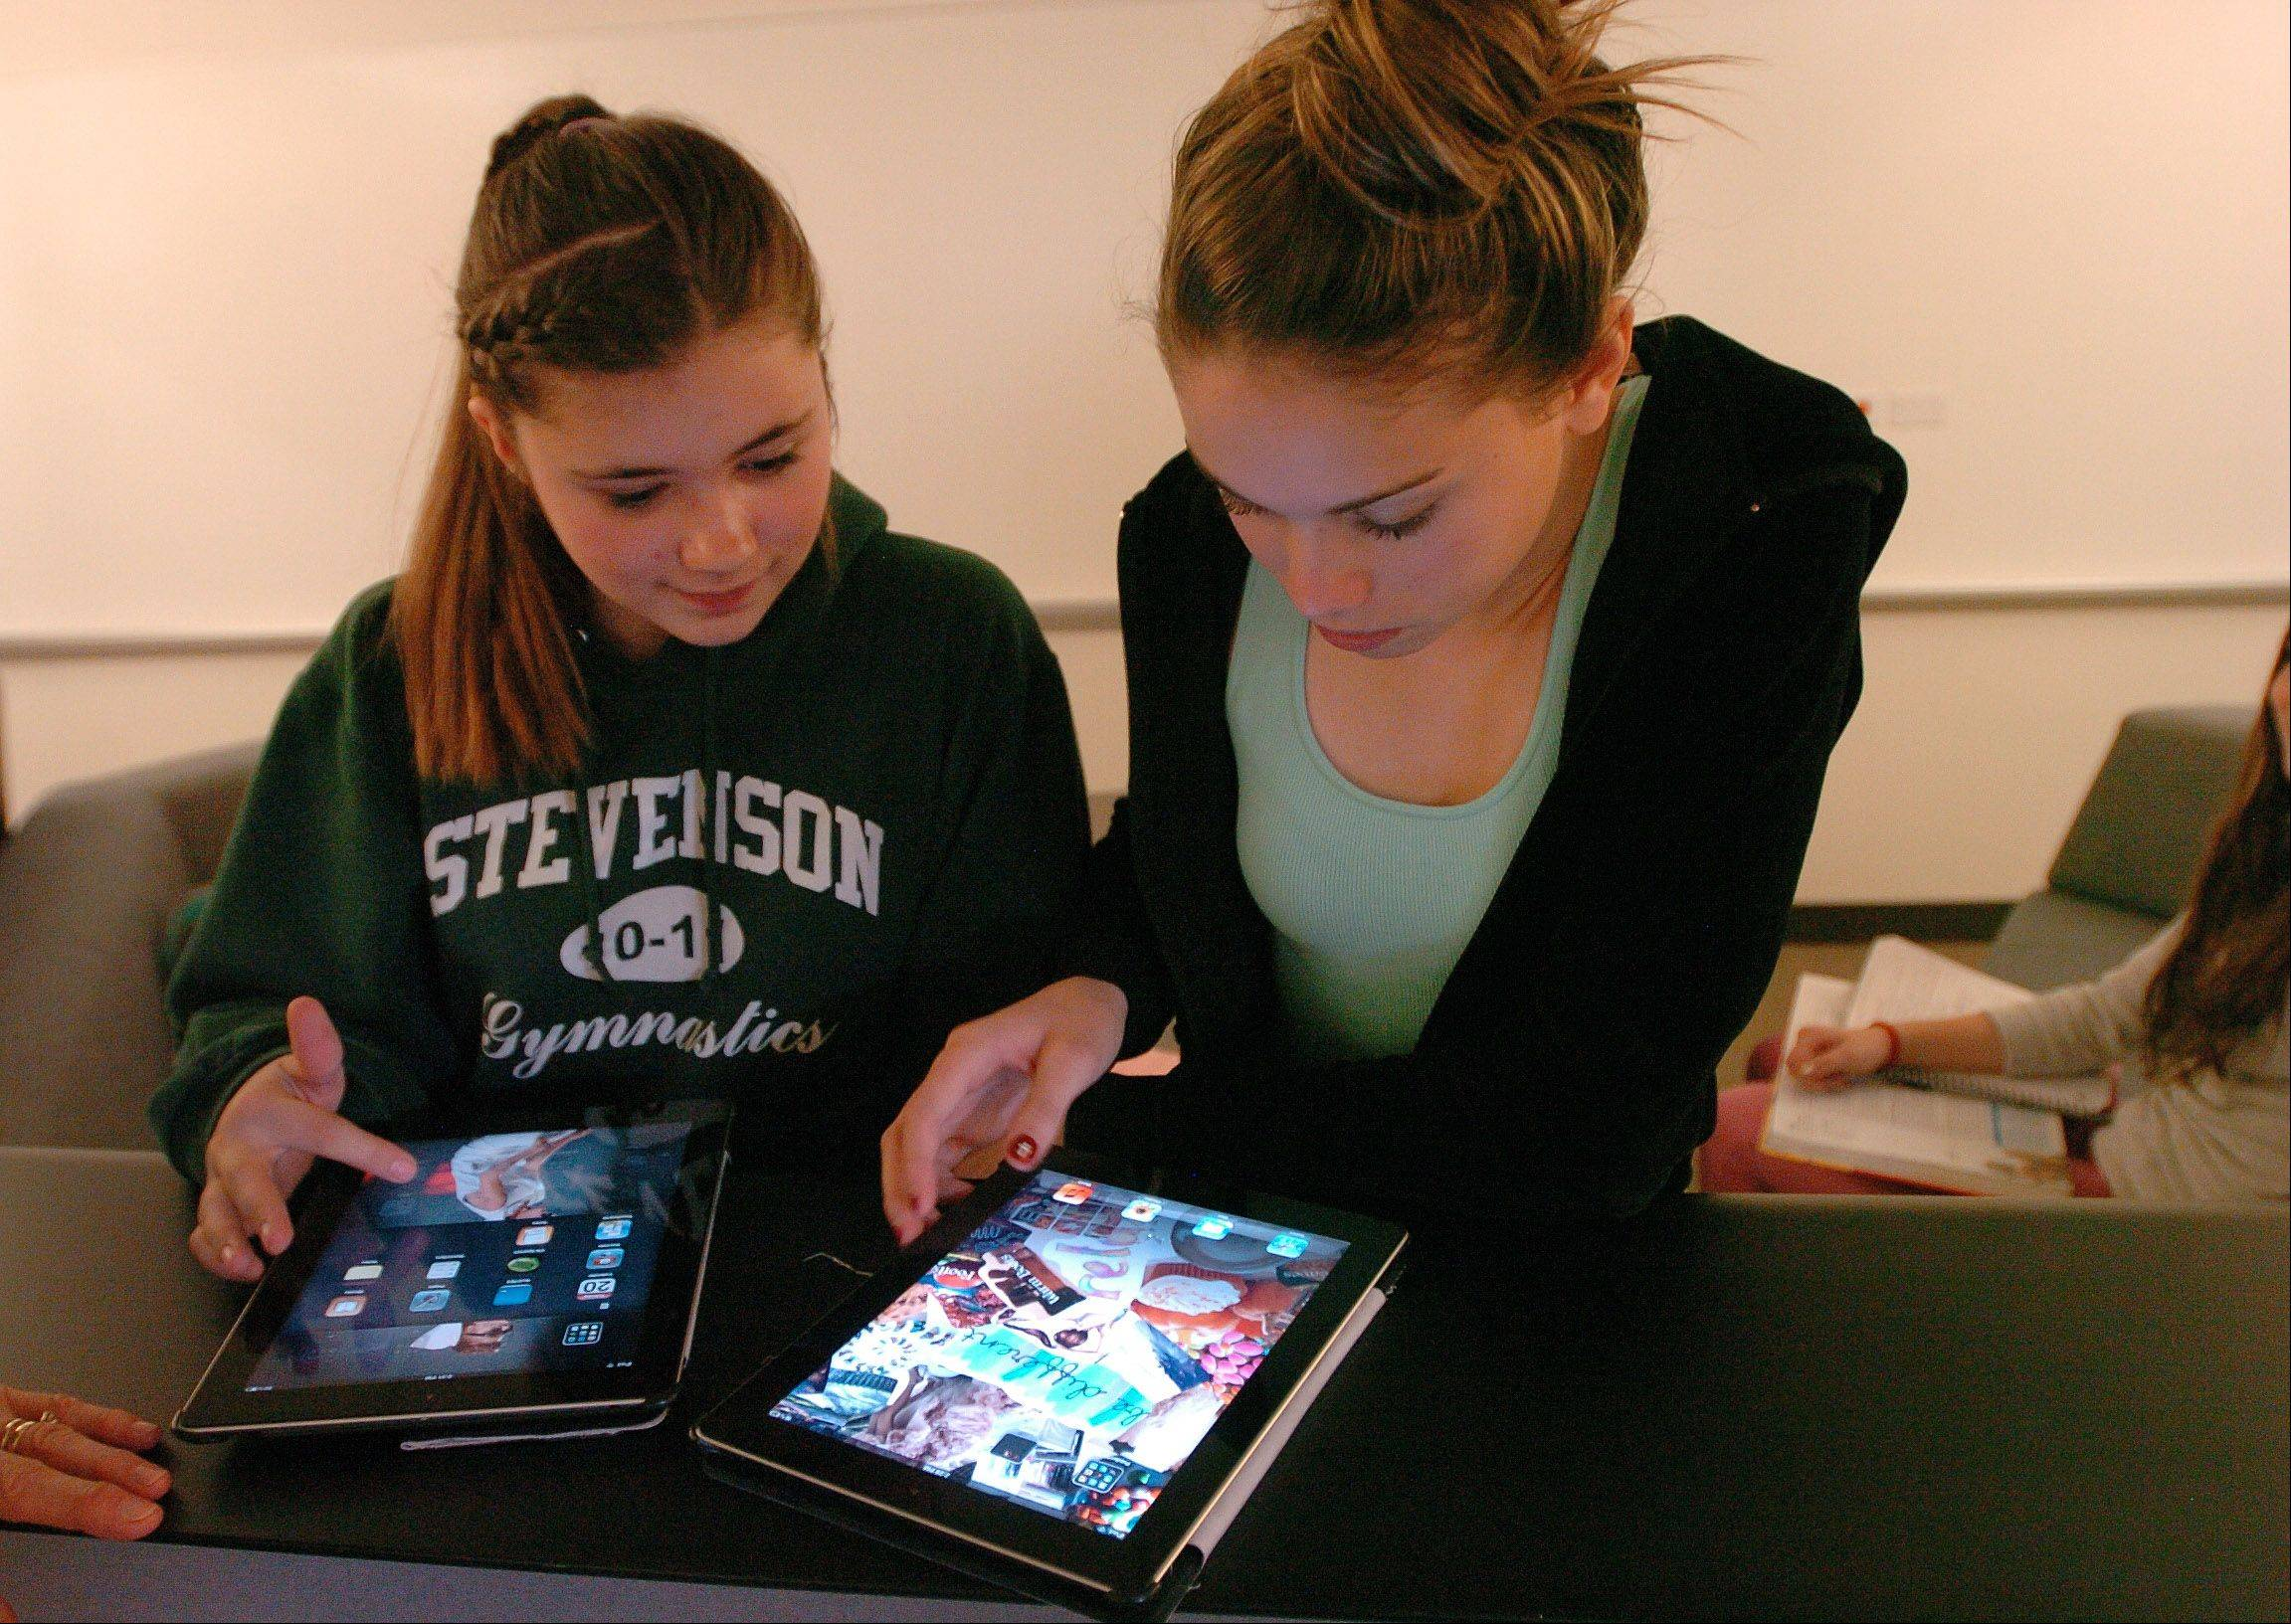 Freshman Spanish students Mikaela Webb, left, and Victoria Warren do homework on Apple iPad tablet computers.